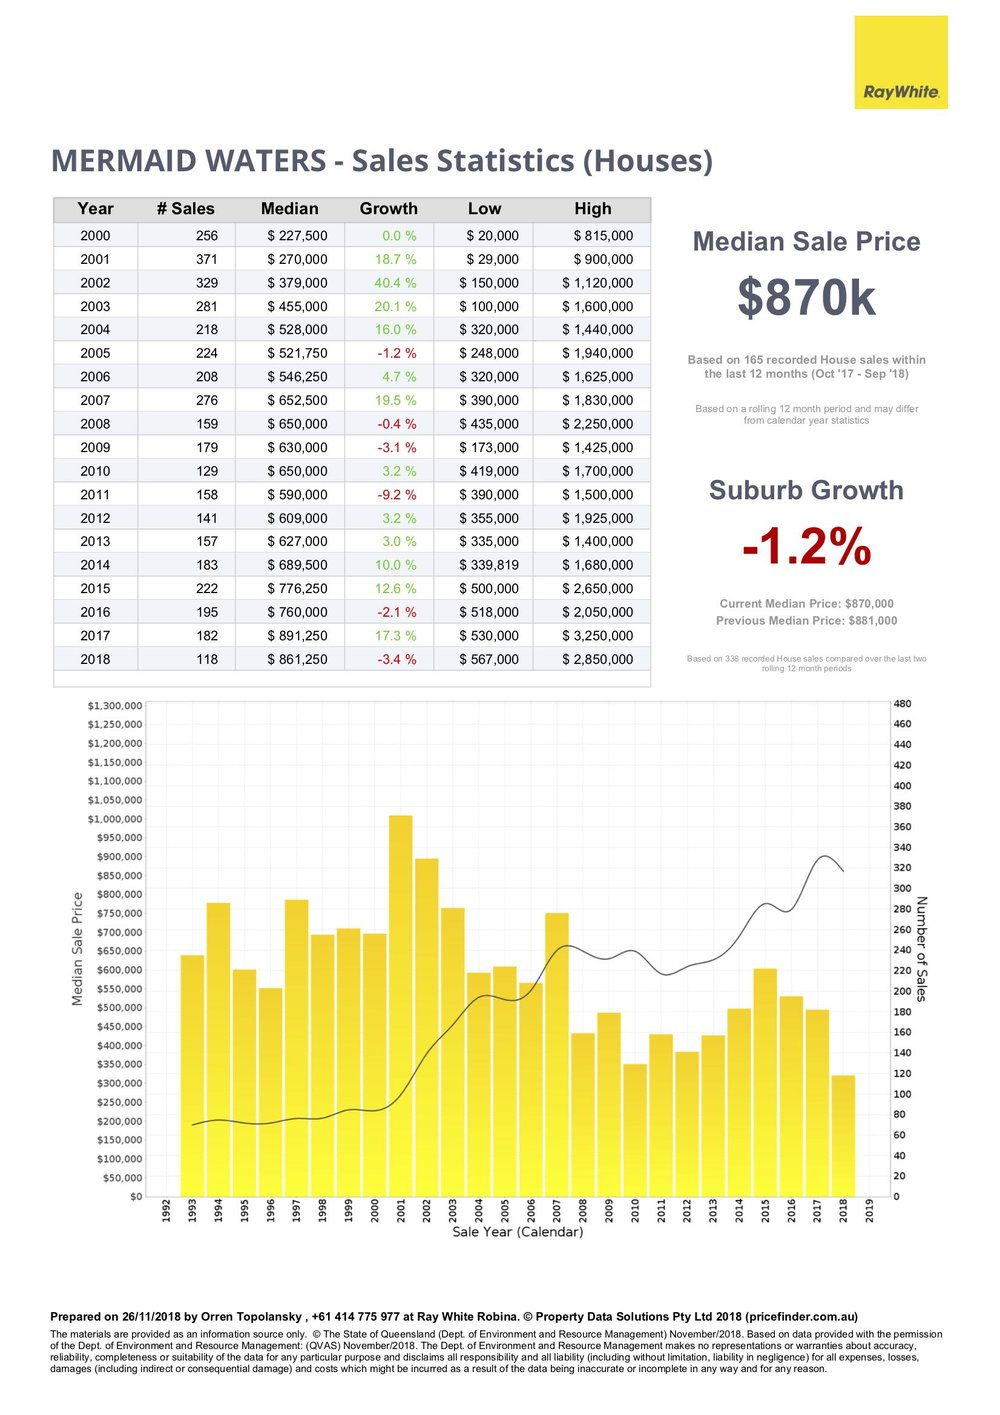 Price statistics for houses in Mermaid Waters, Gold Coast, Queensland